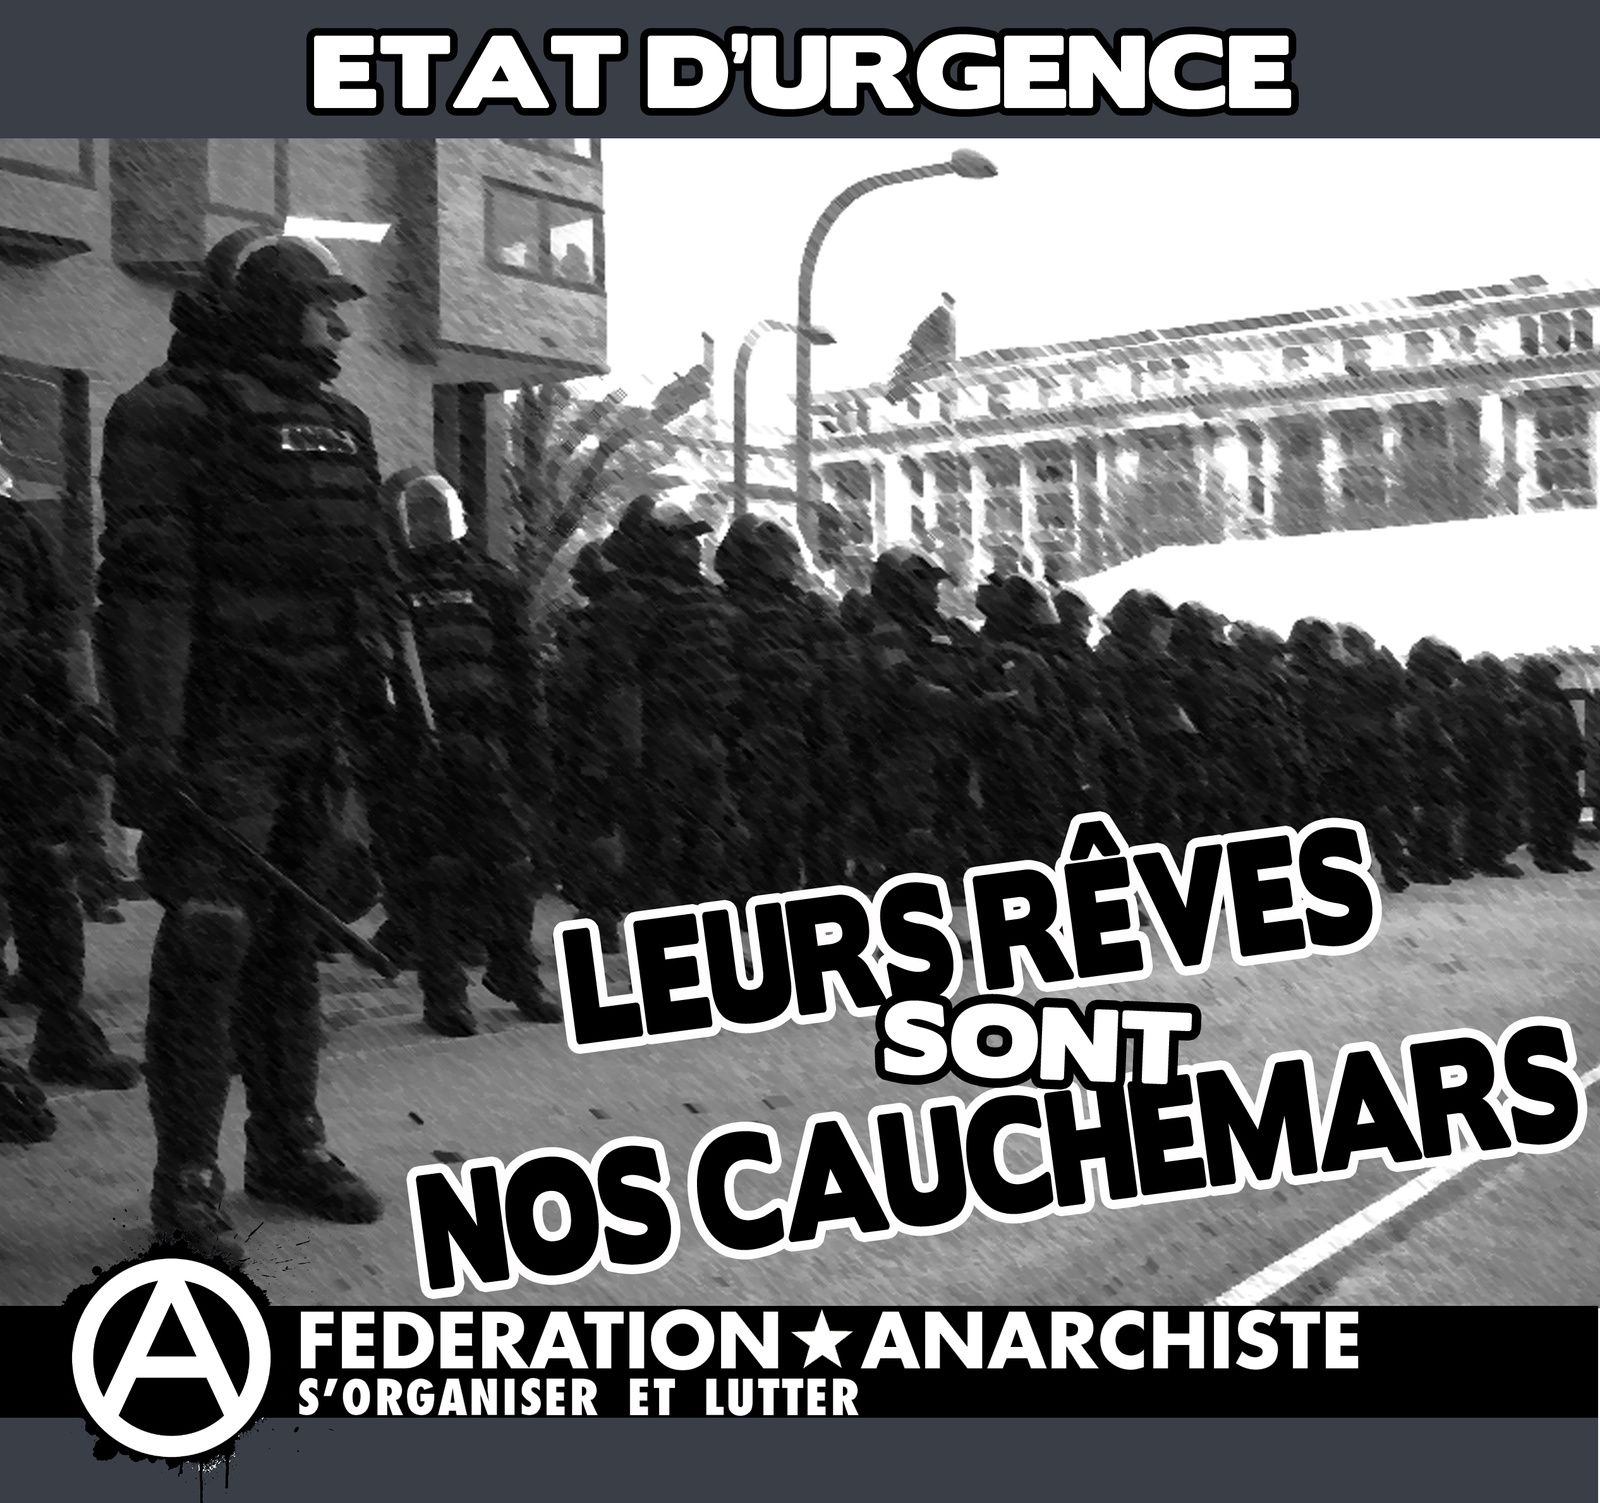 Attention: Etat d'urgence